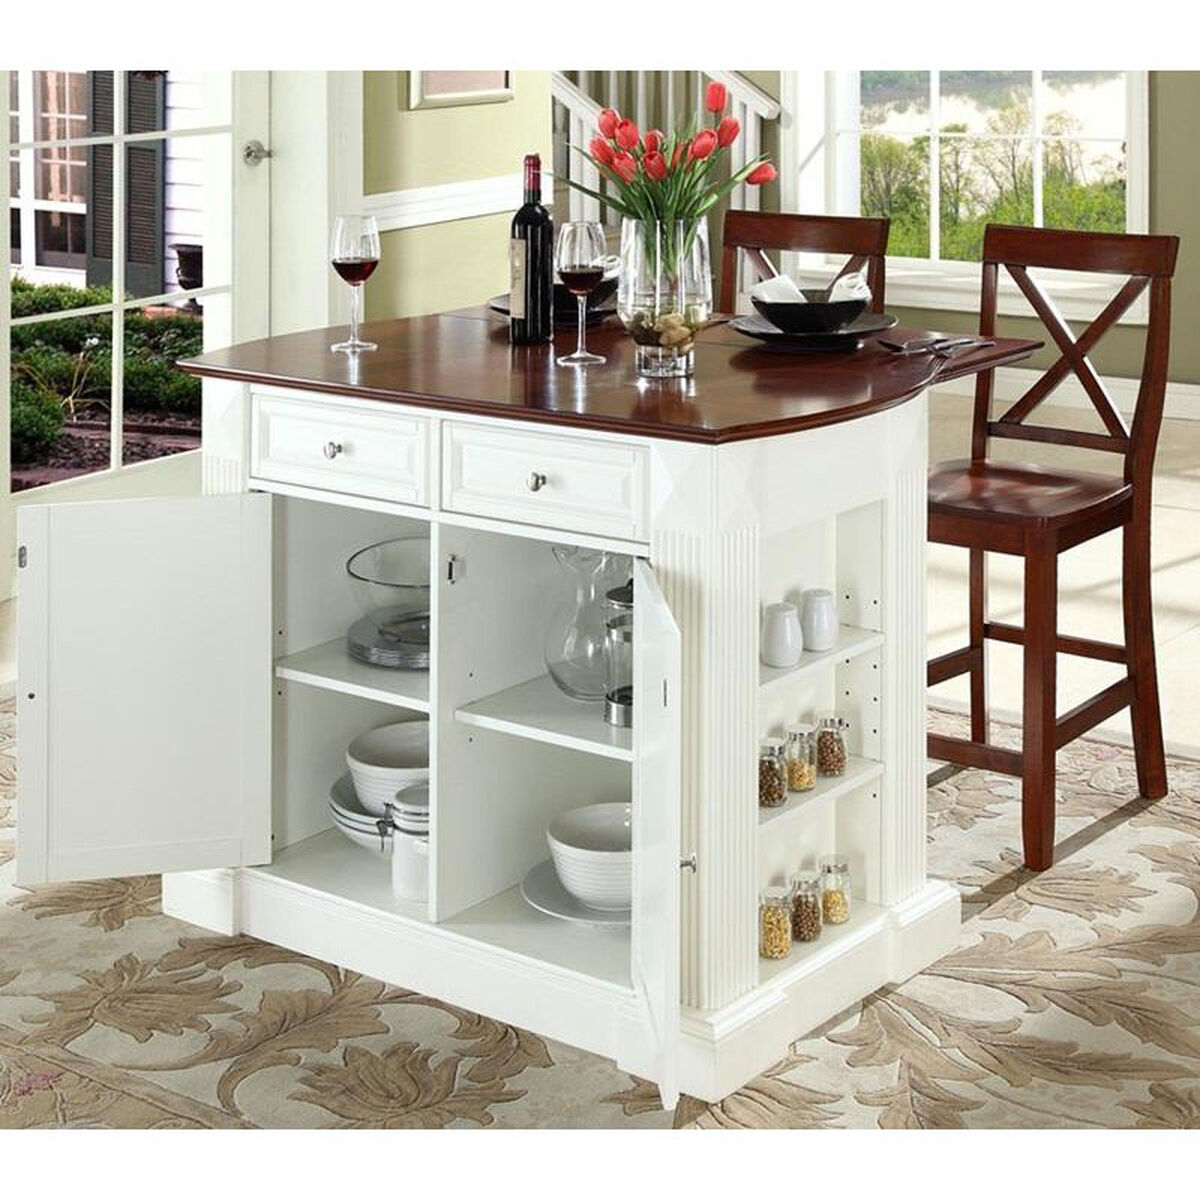 Our drop leaf breakfast bar top kitchen island with 24 black x back